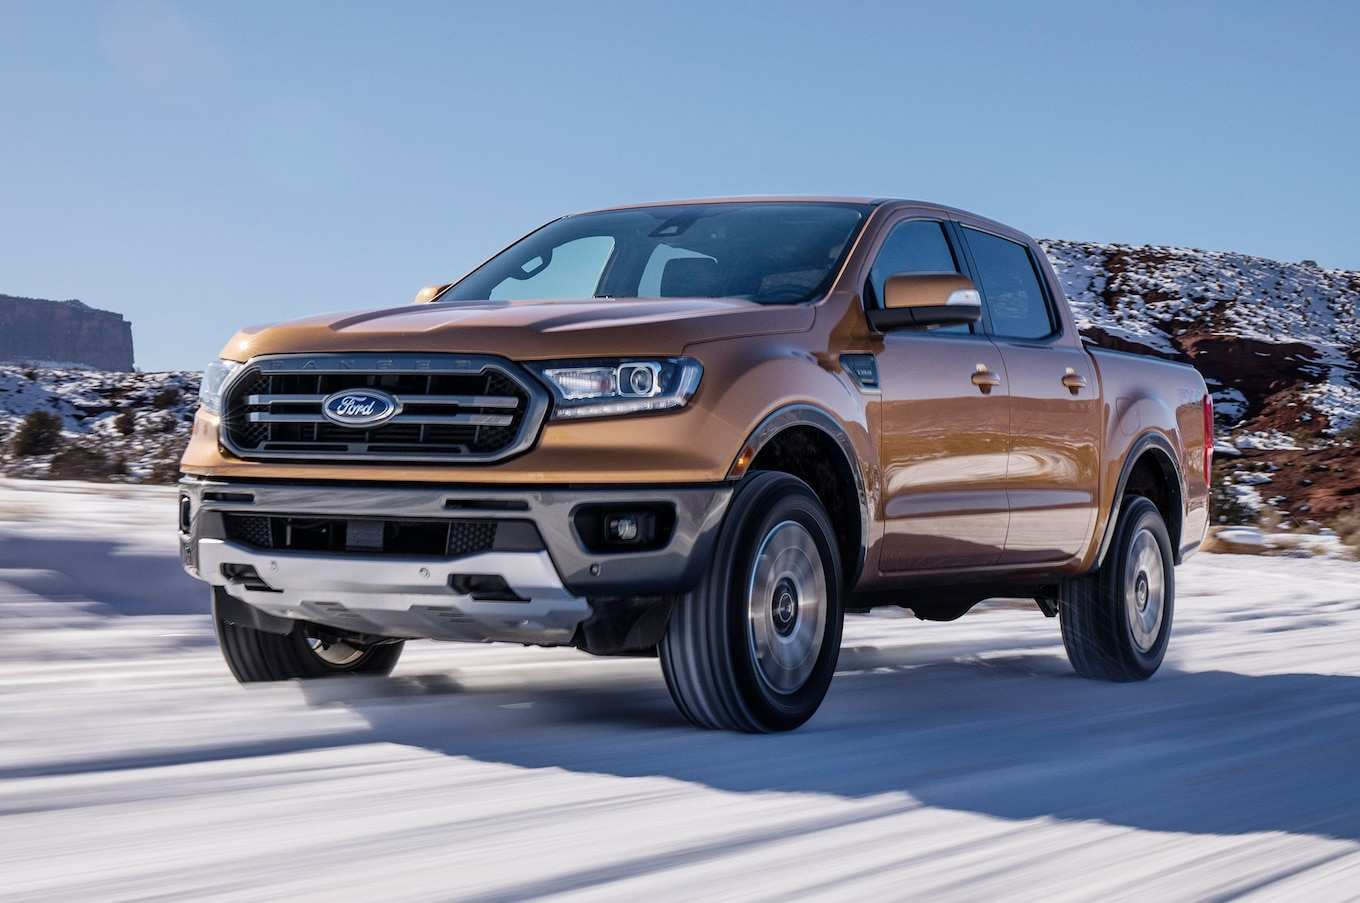 32 Gallery of The Ford Ranger 2019 Release Date Review Interior for The Ford Ranger 2019 Release Date Review